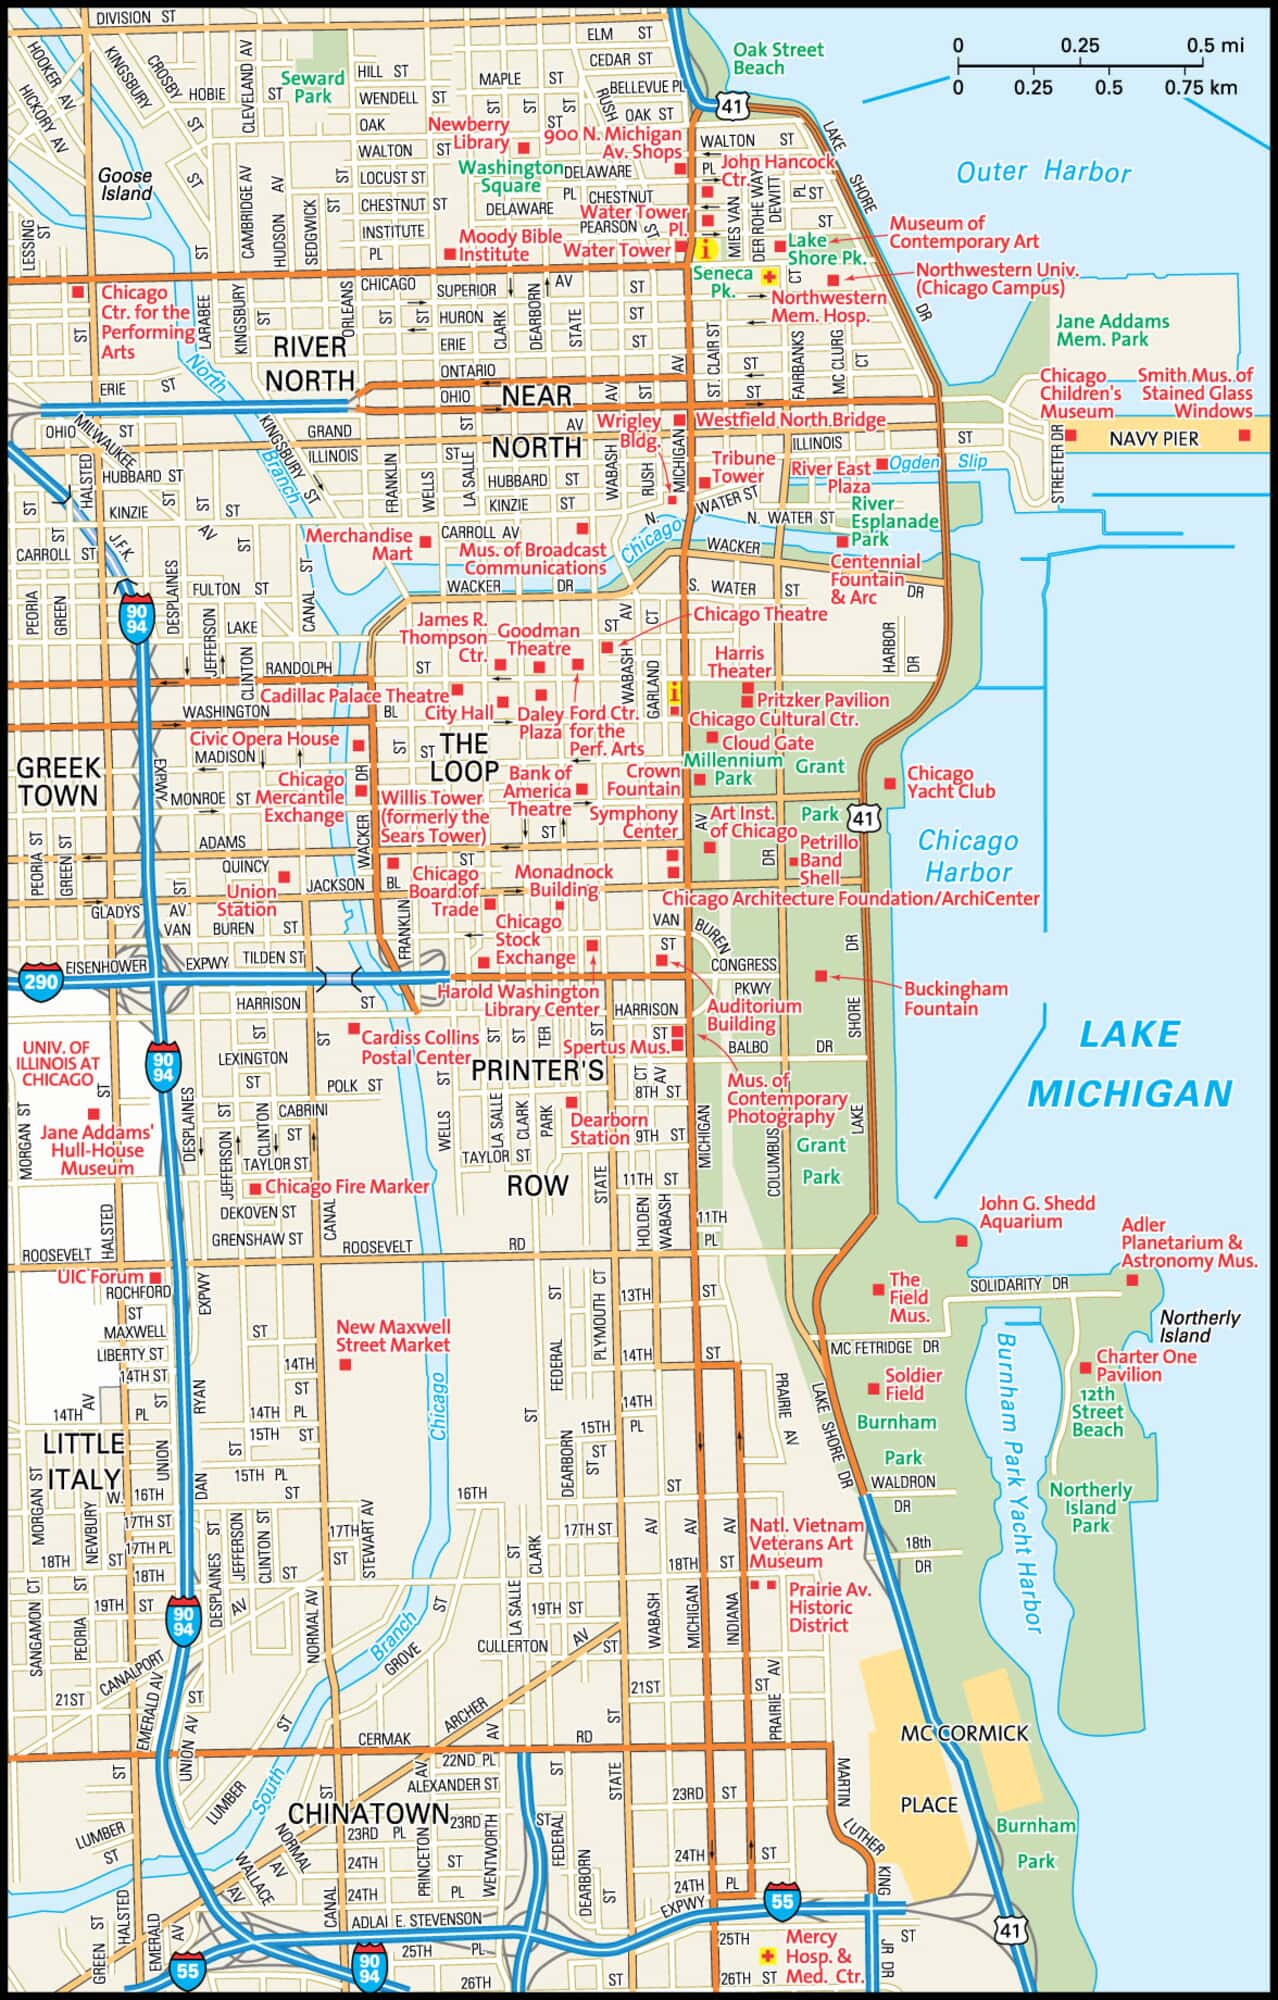 Down Town Chicago Map Downtown Chicago Map With Hotels on